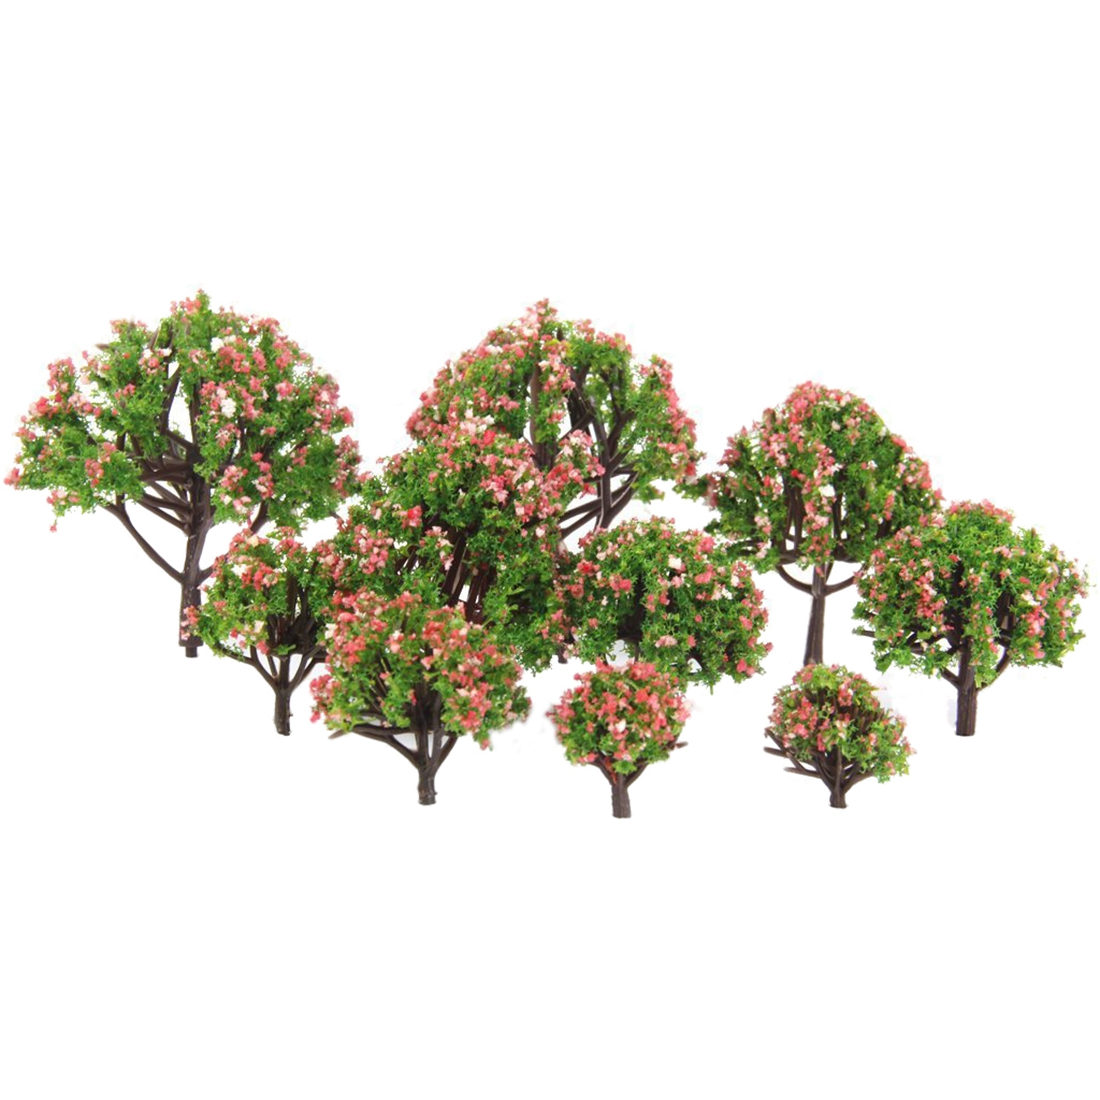 MACH Plastic peach trees model railway railway landscape scale 1:75 - 1: 500